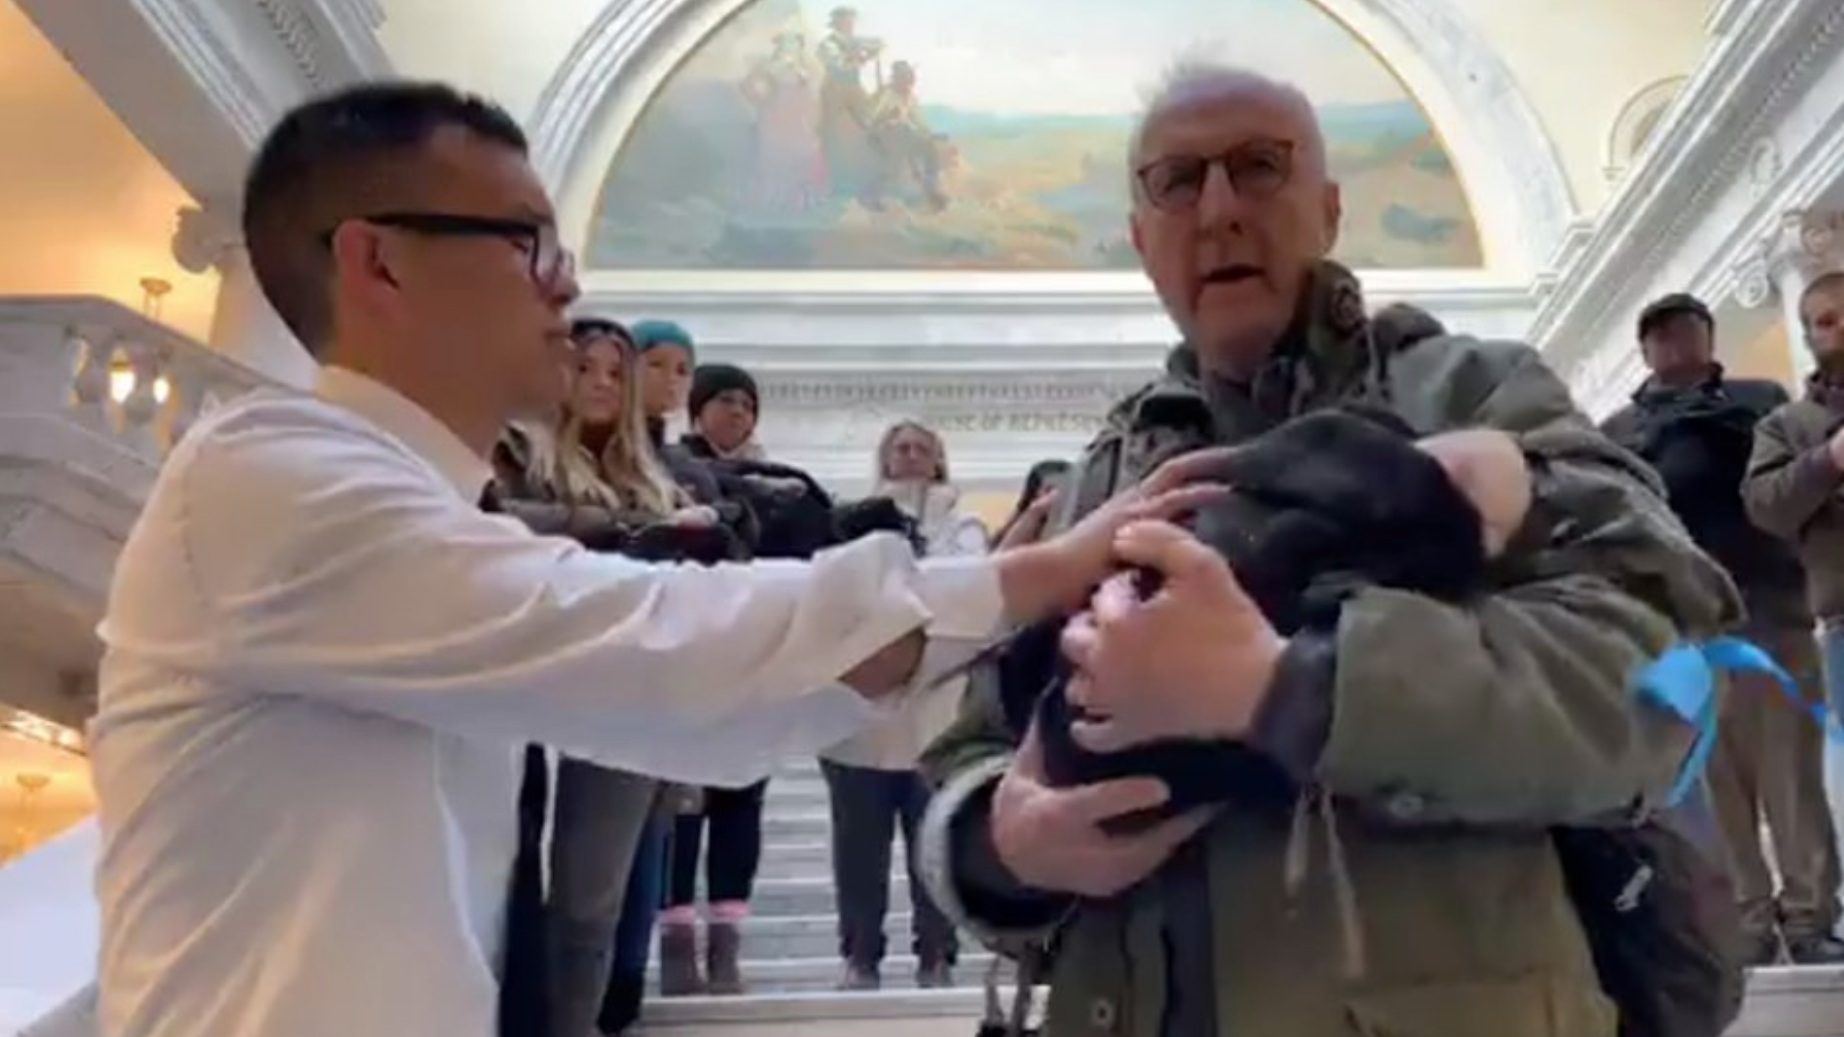 The star of 'Babe' brought a dead piglet to the Utah Capitol to make a point about animal cruelty - November 20, 2018The Salt Lake Tribune